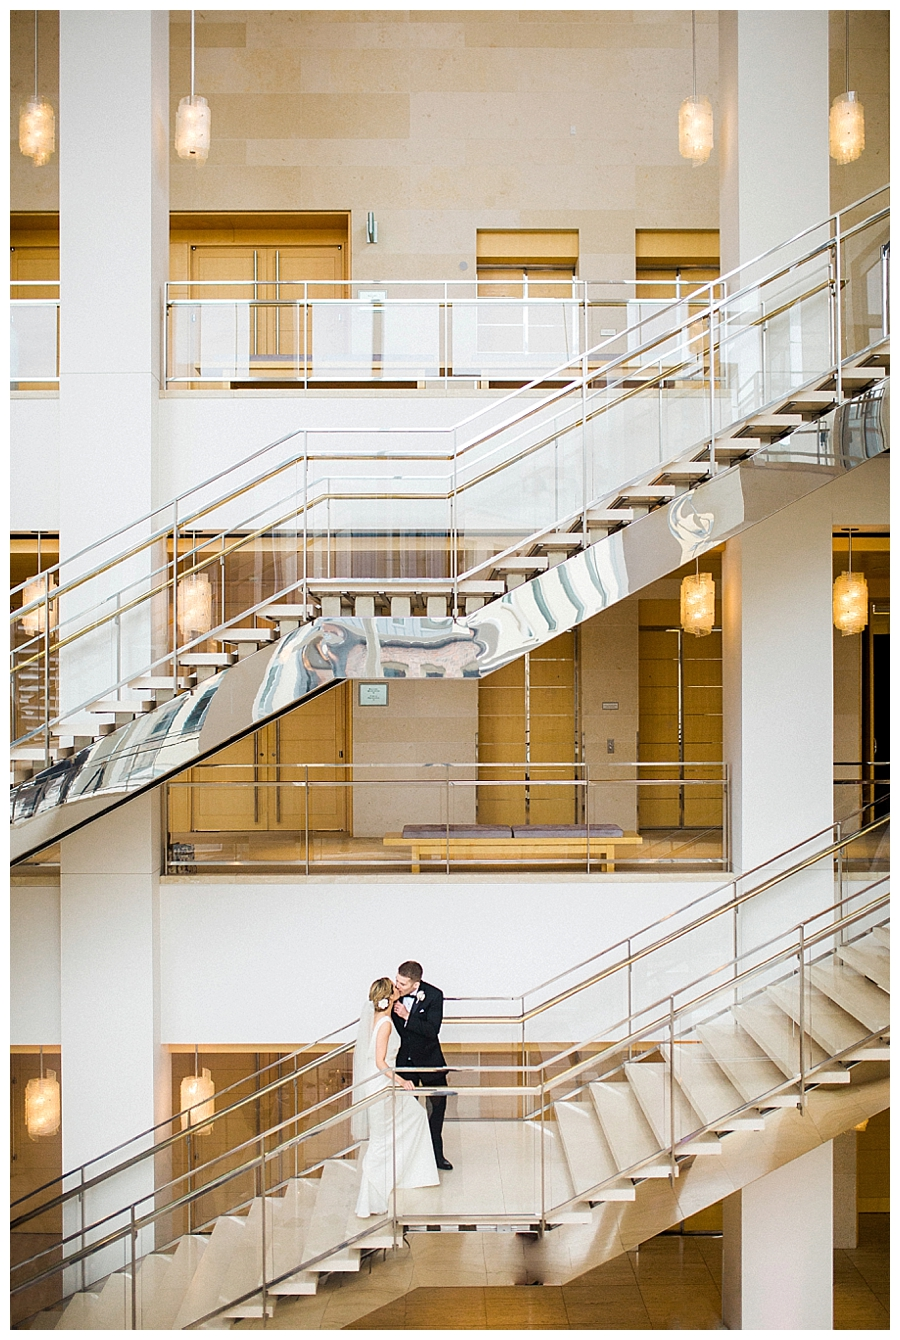 fine art wedding photography at the Overture Center for the Arts in Madison, Wisconsin